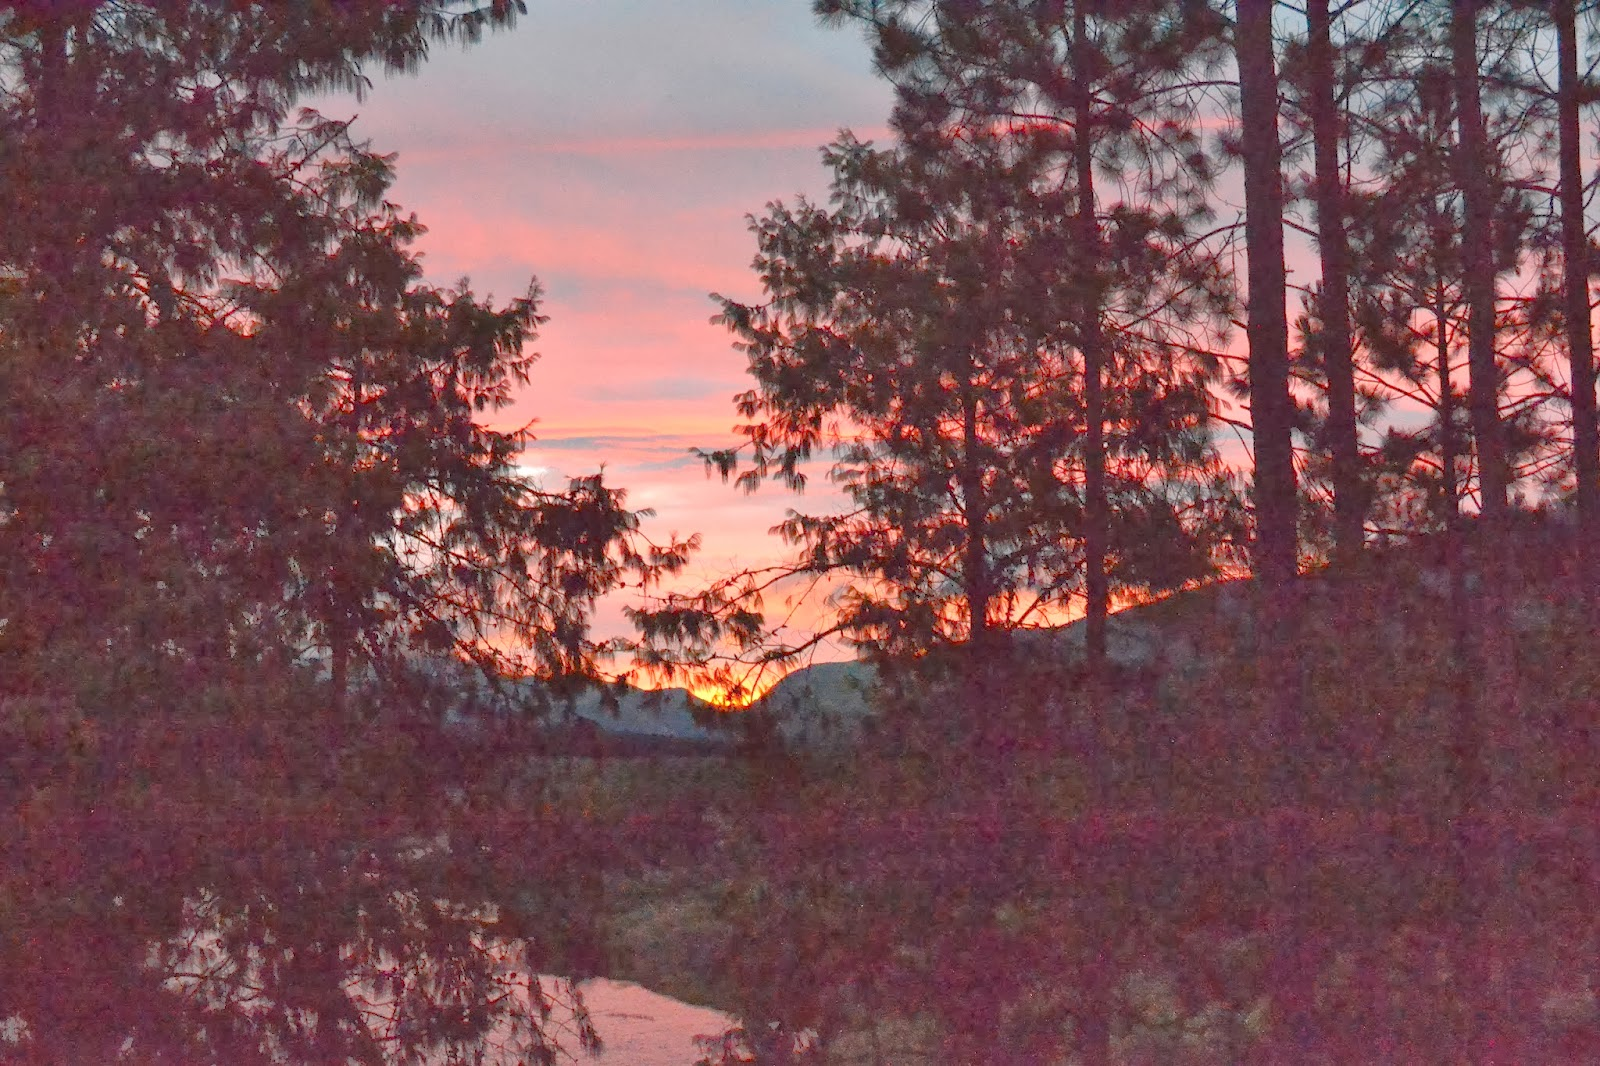 Sunset through the trees red sky